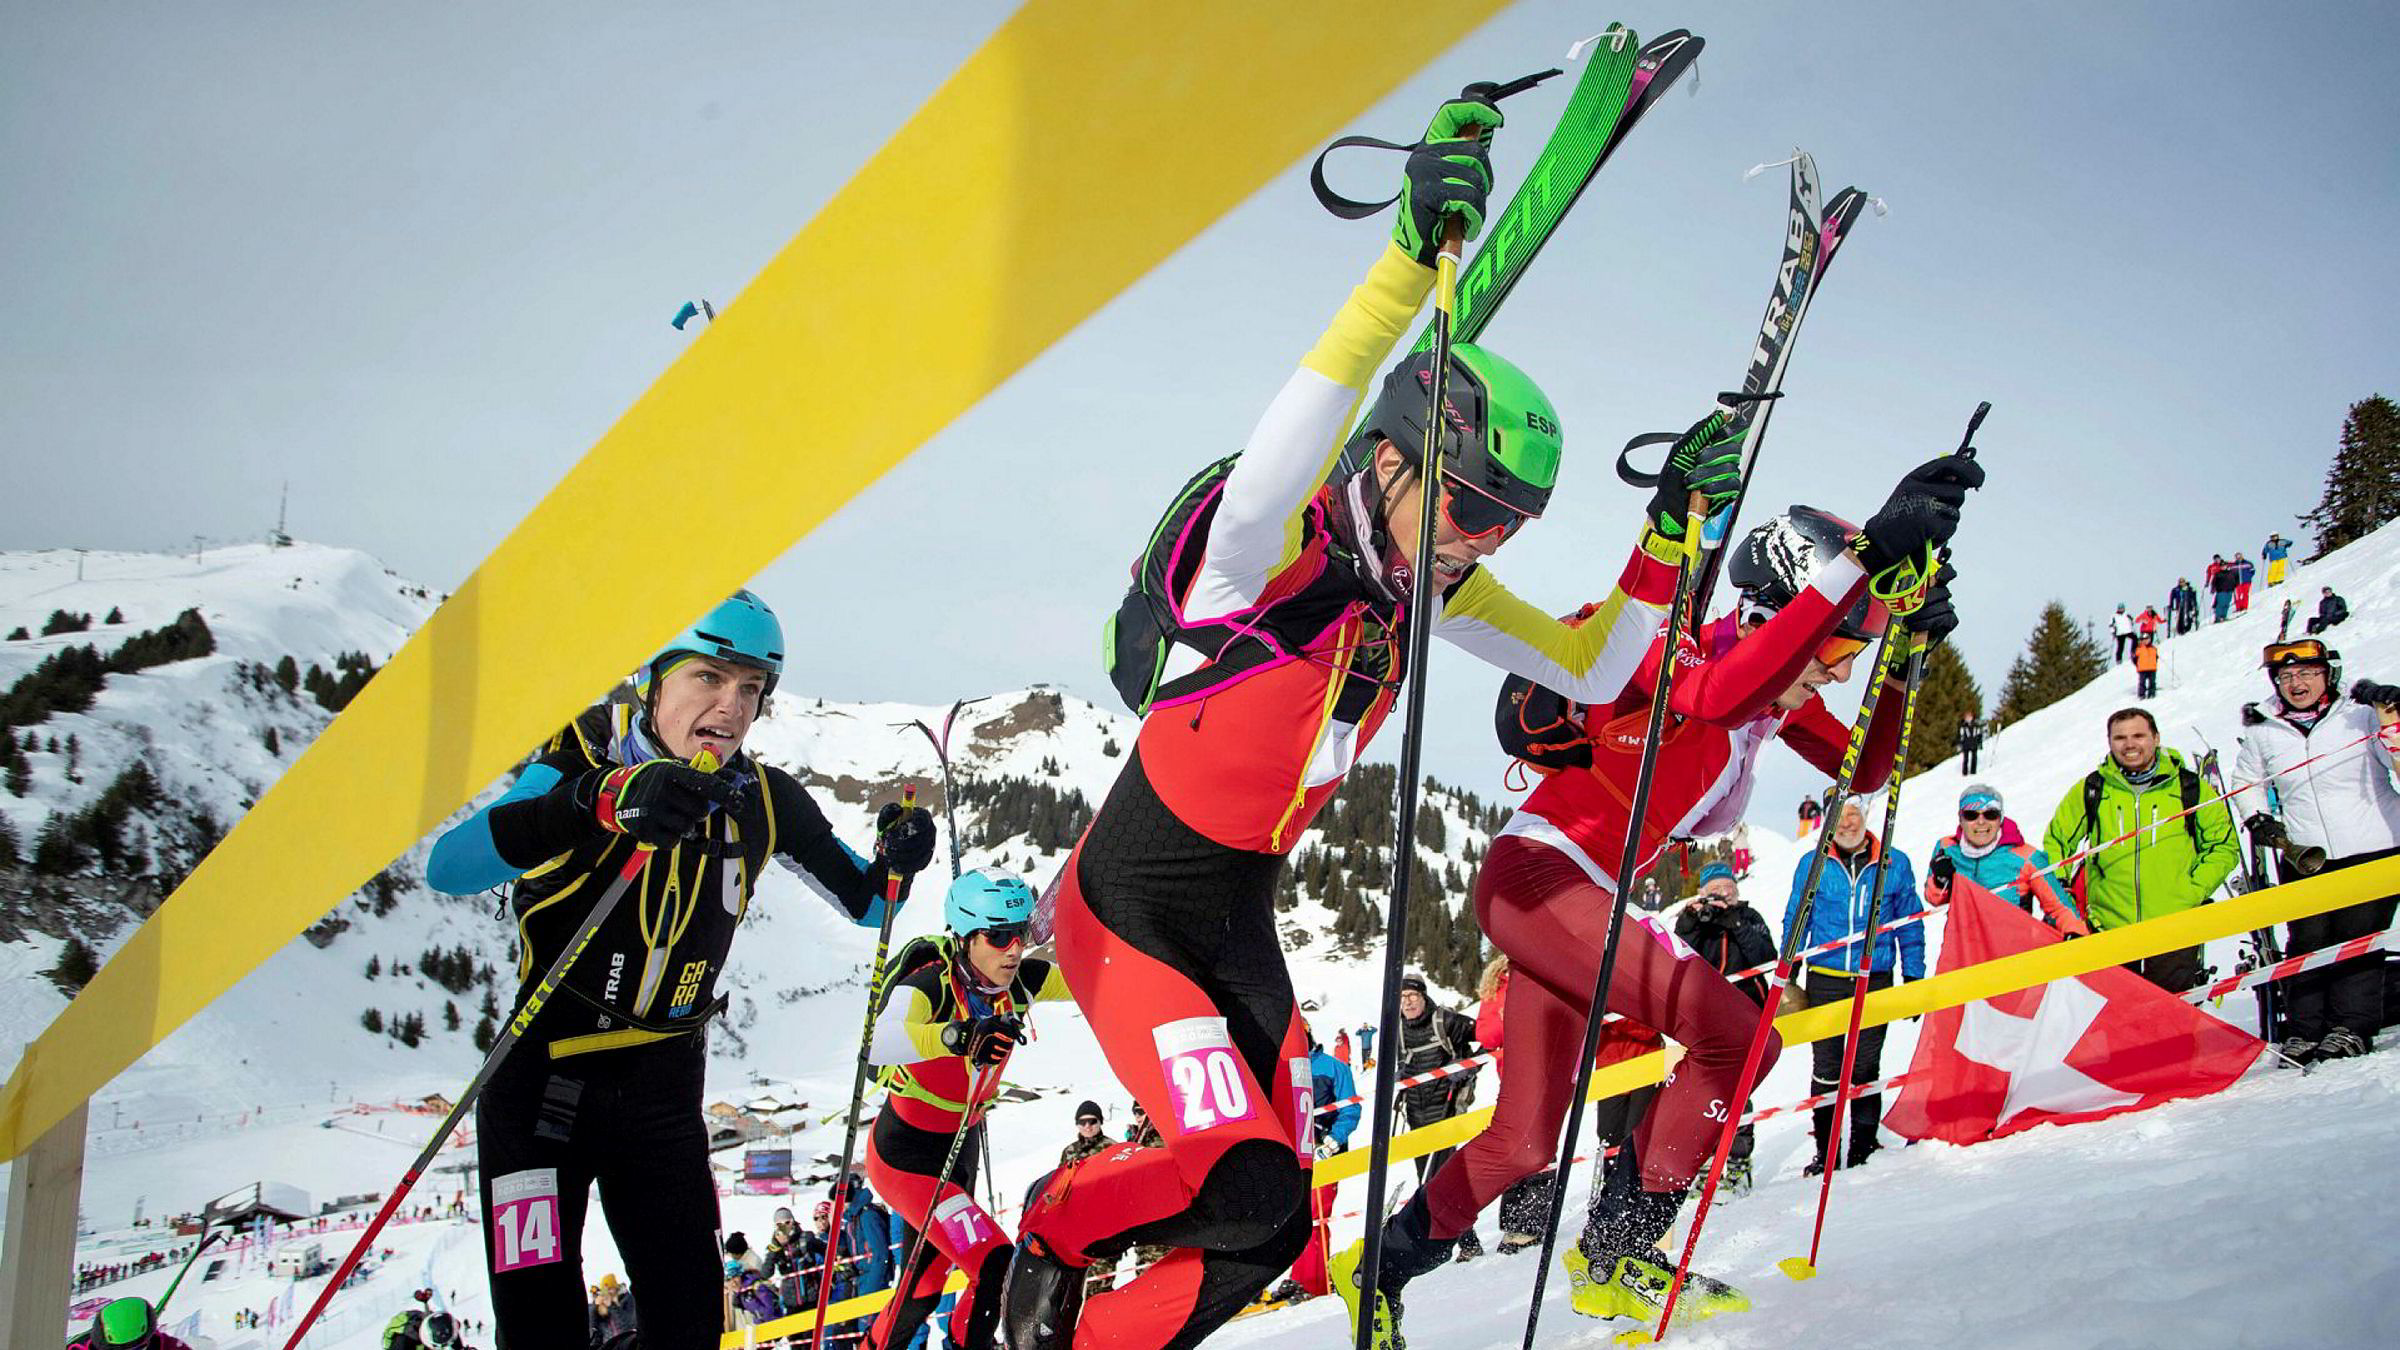 In this handout photo released by the Olympic Information Services (OIS) of the International Olympic Committee (IOC) shows Ot Ferrer Martinez of Spain (20), Thomas Bussard of Switzerland (R), Nikita Philippov of Russia (14), and Marc Radua Ivern of spain (7) compete in the Ski Mountaineering Men's Sprint Semifinal 2, at the Villars Winter Park on January 13, 2020 during the Winter Youth Olympic Games of Lausanne. (Photo by Chloe KNOTT / OIS/IOC / AFP) / RESTRICTED TO EDITORIAL USE - MANDATORY CREDIT